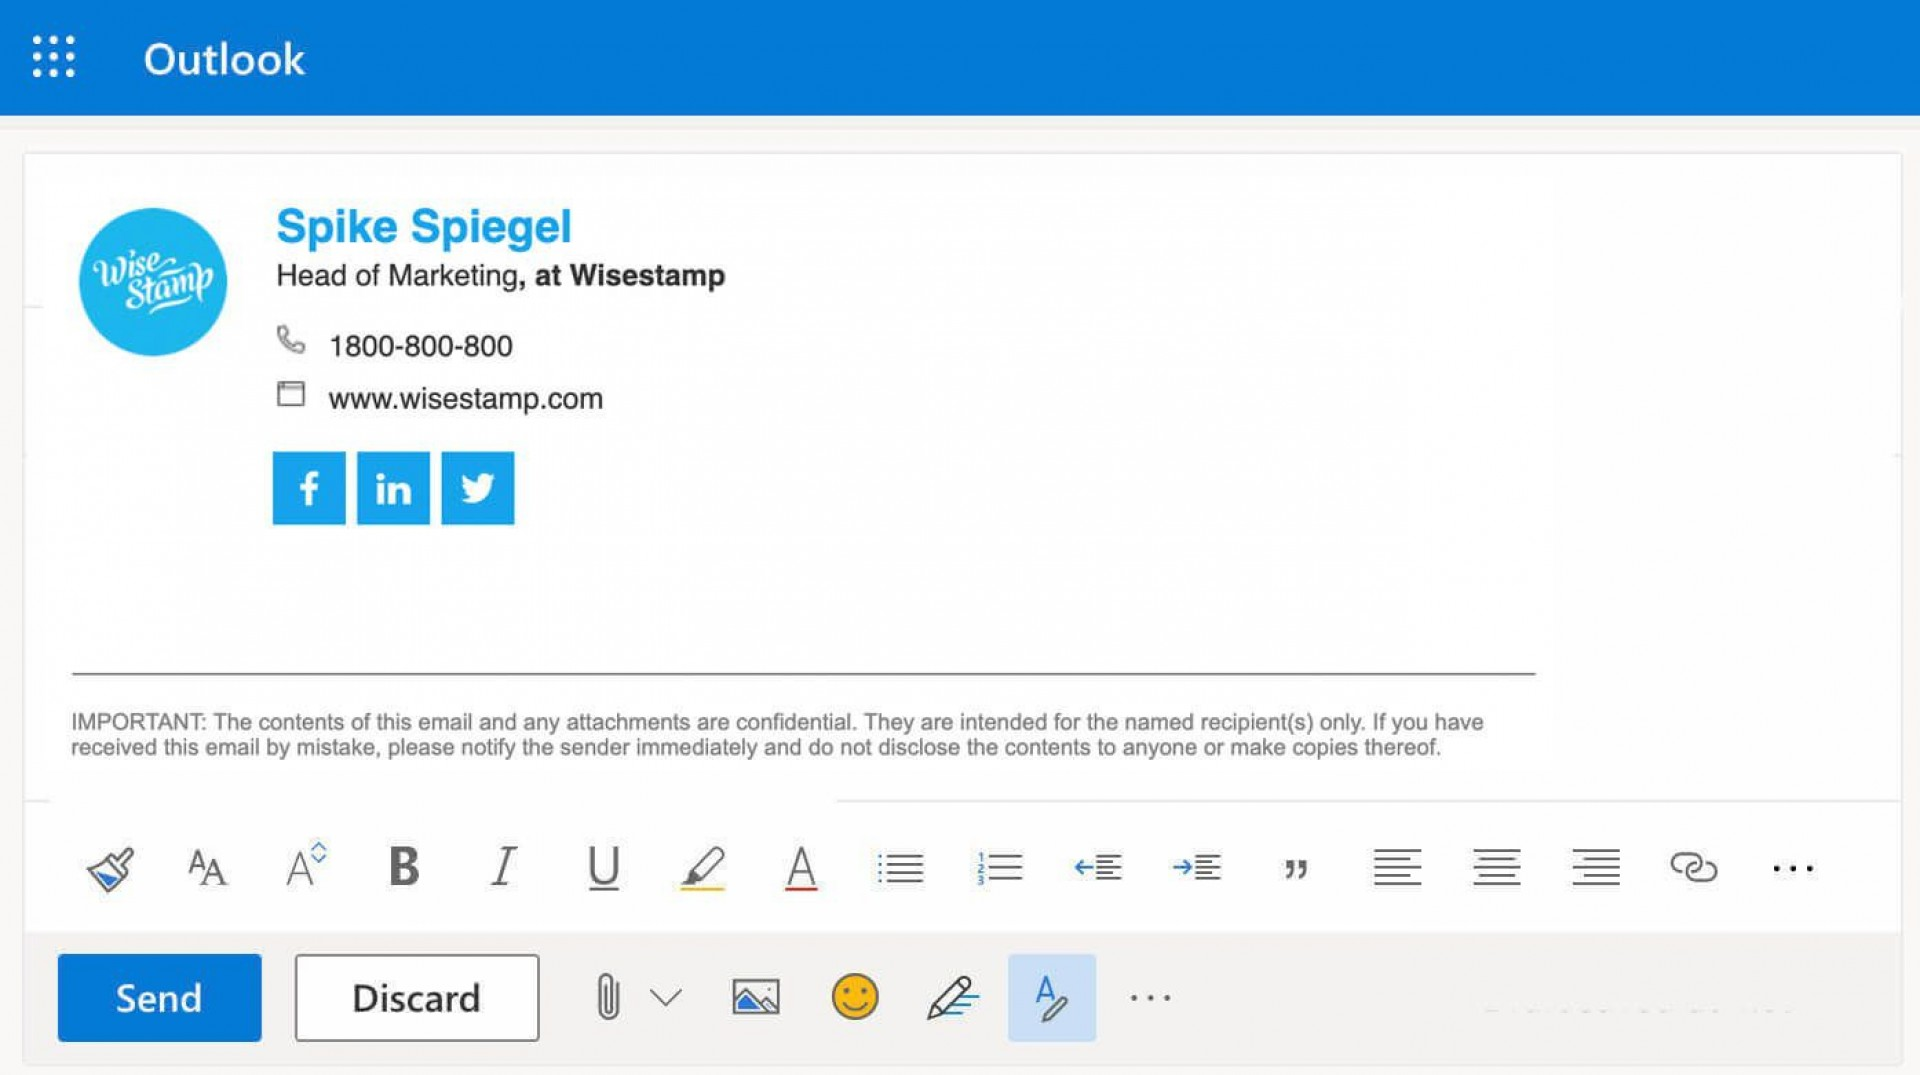 002 Beautiful Outlook Email Signature Template Photo  Example Free Download Best1920